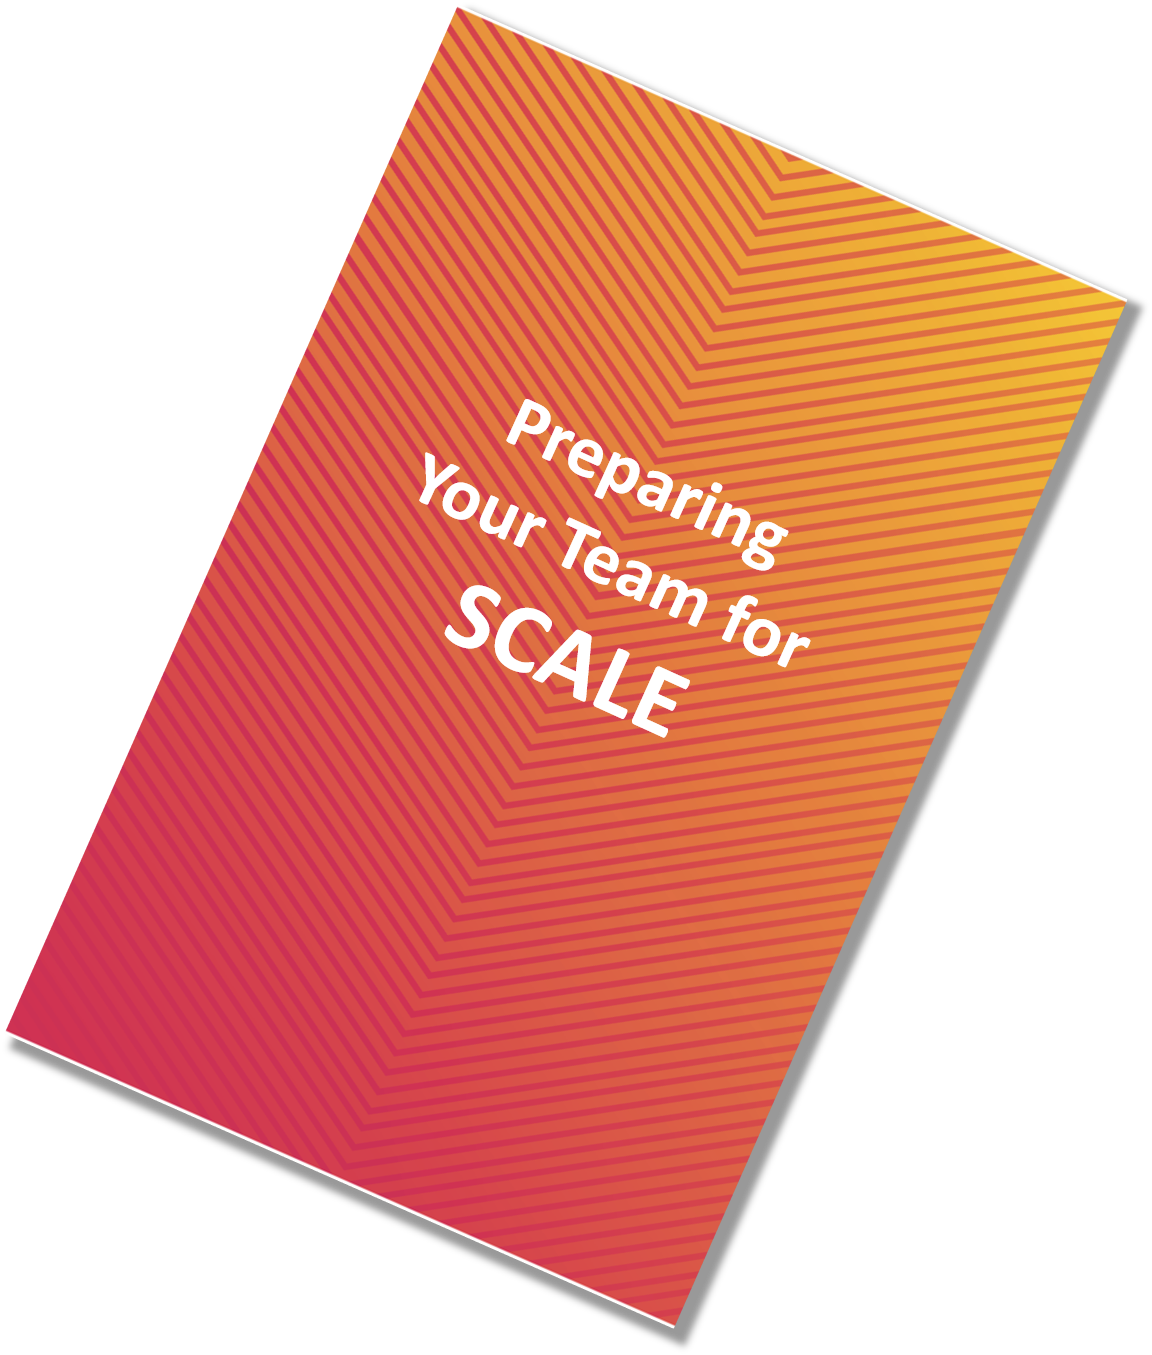 Preparing your team for scaling